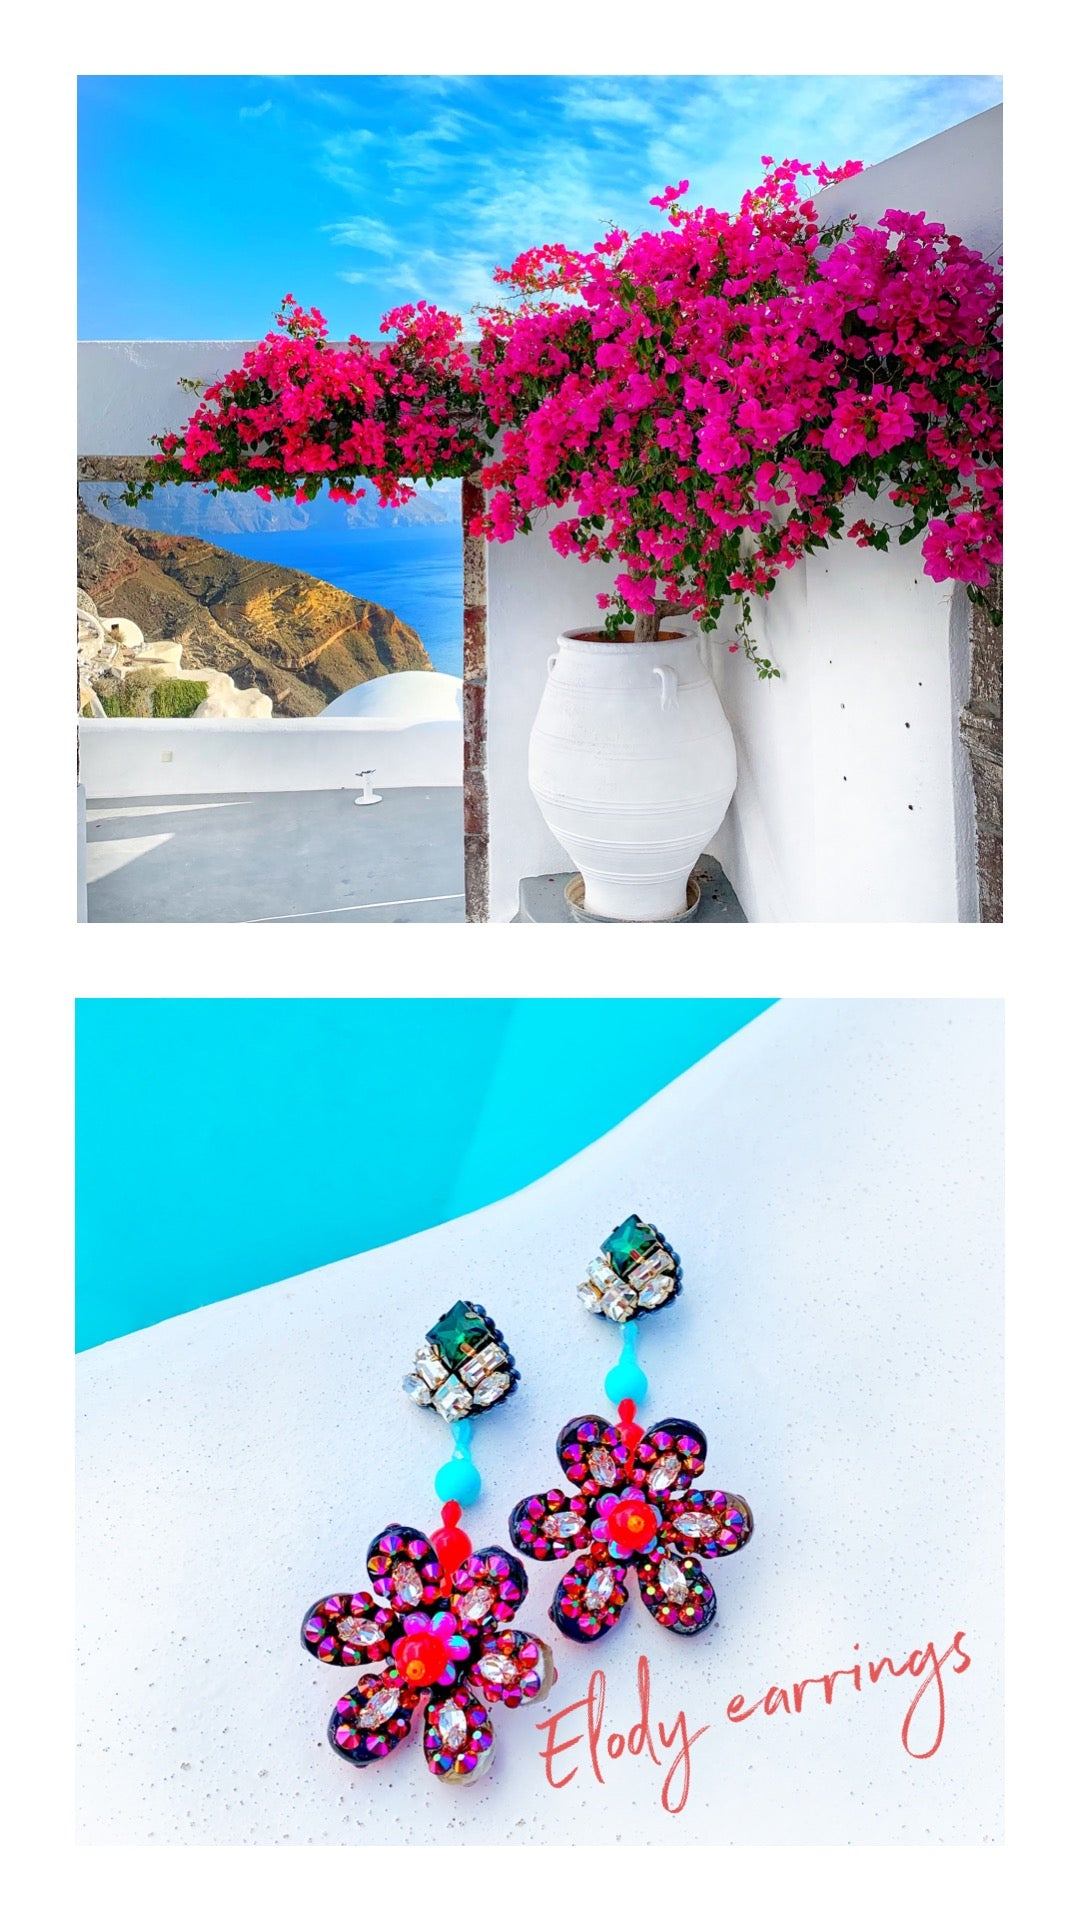 Colourful Elody crystal earrings by Jolita Jewellery and Santorini blooms